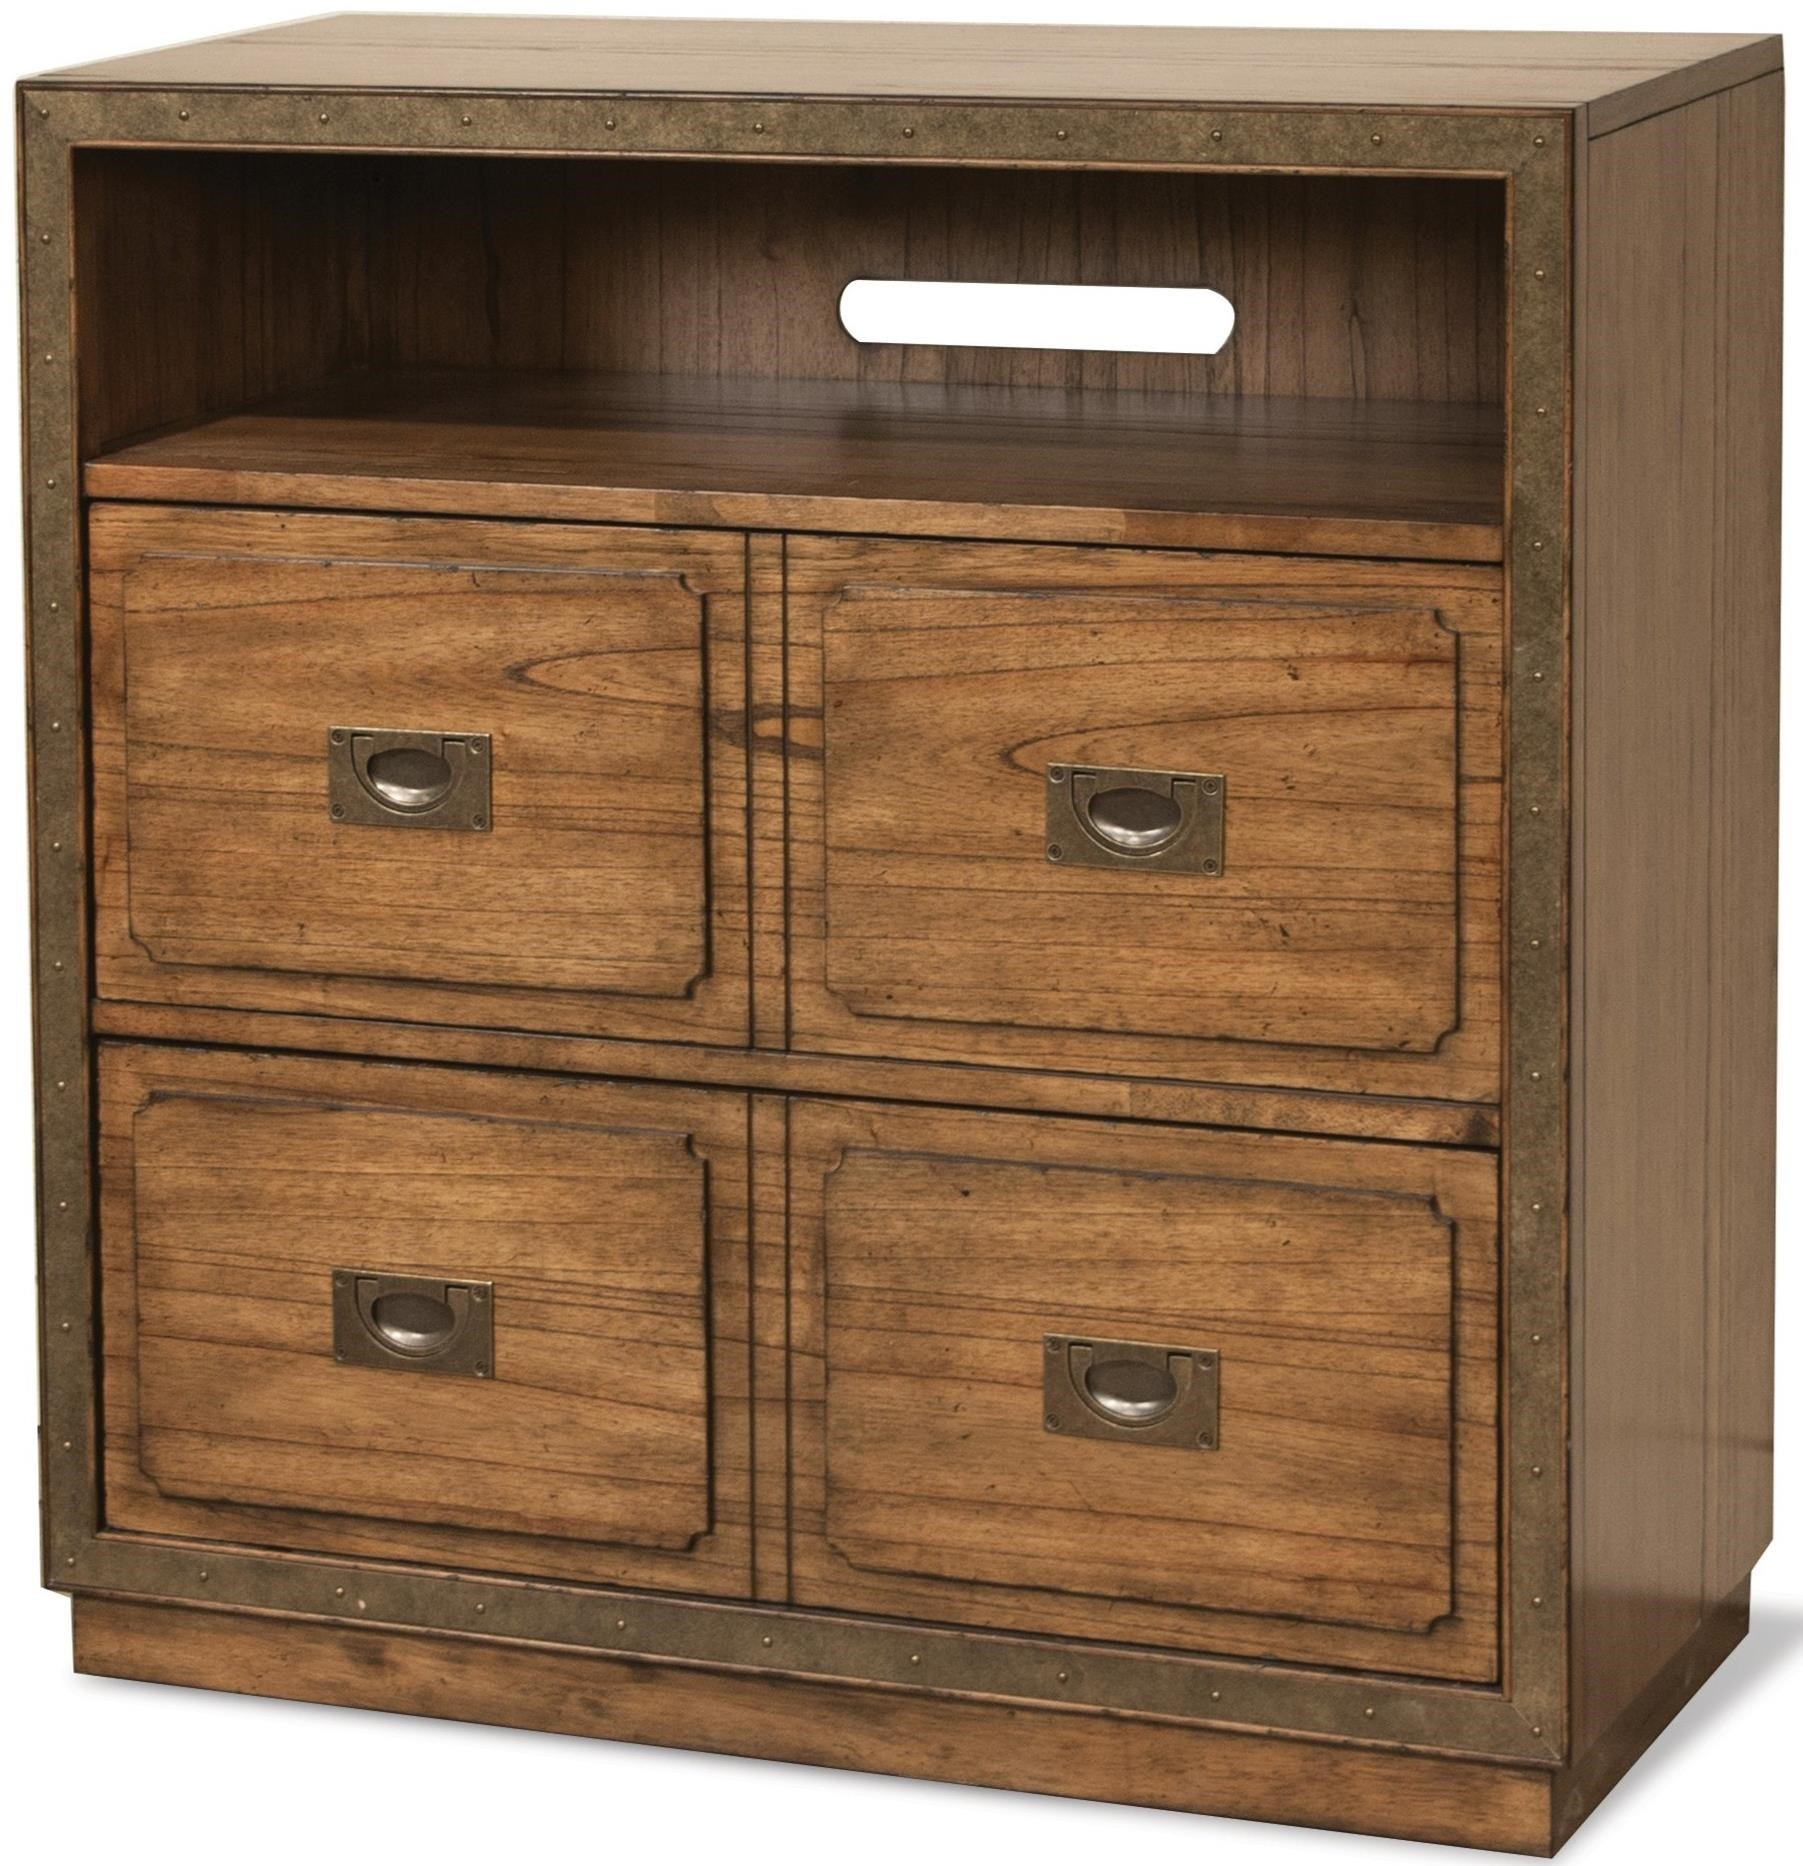 Riverside Furniture Falls Creek Drawer Storage Unit - Item Number: 16146